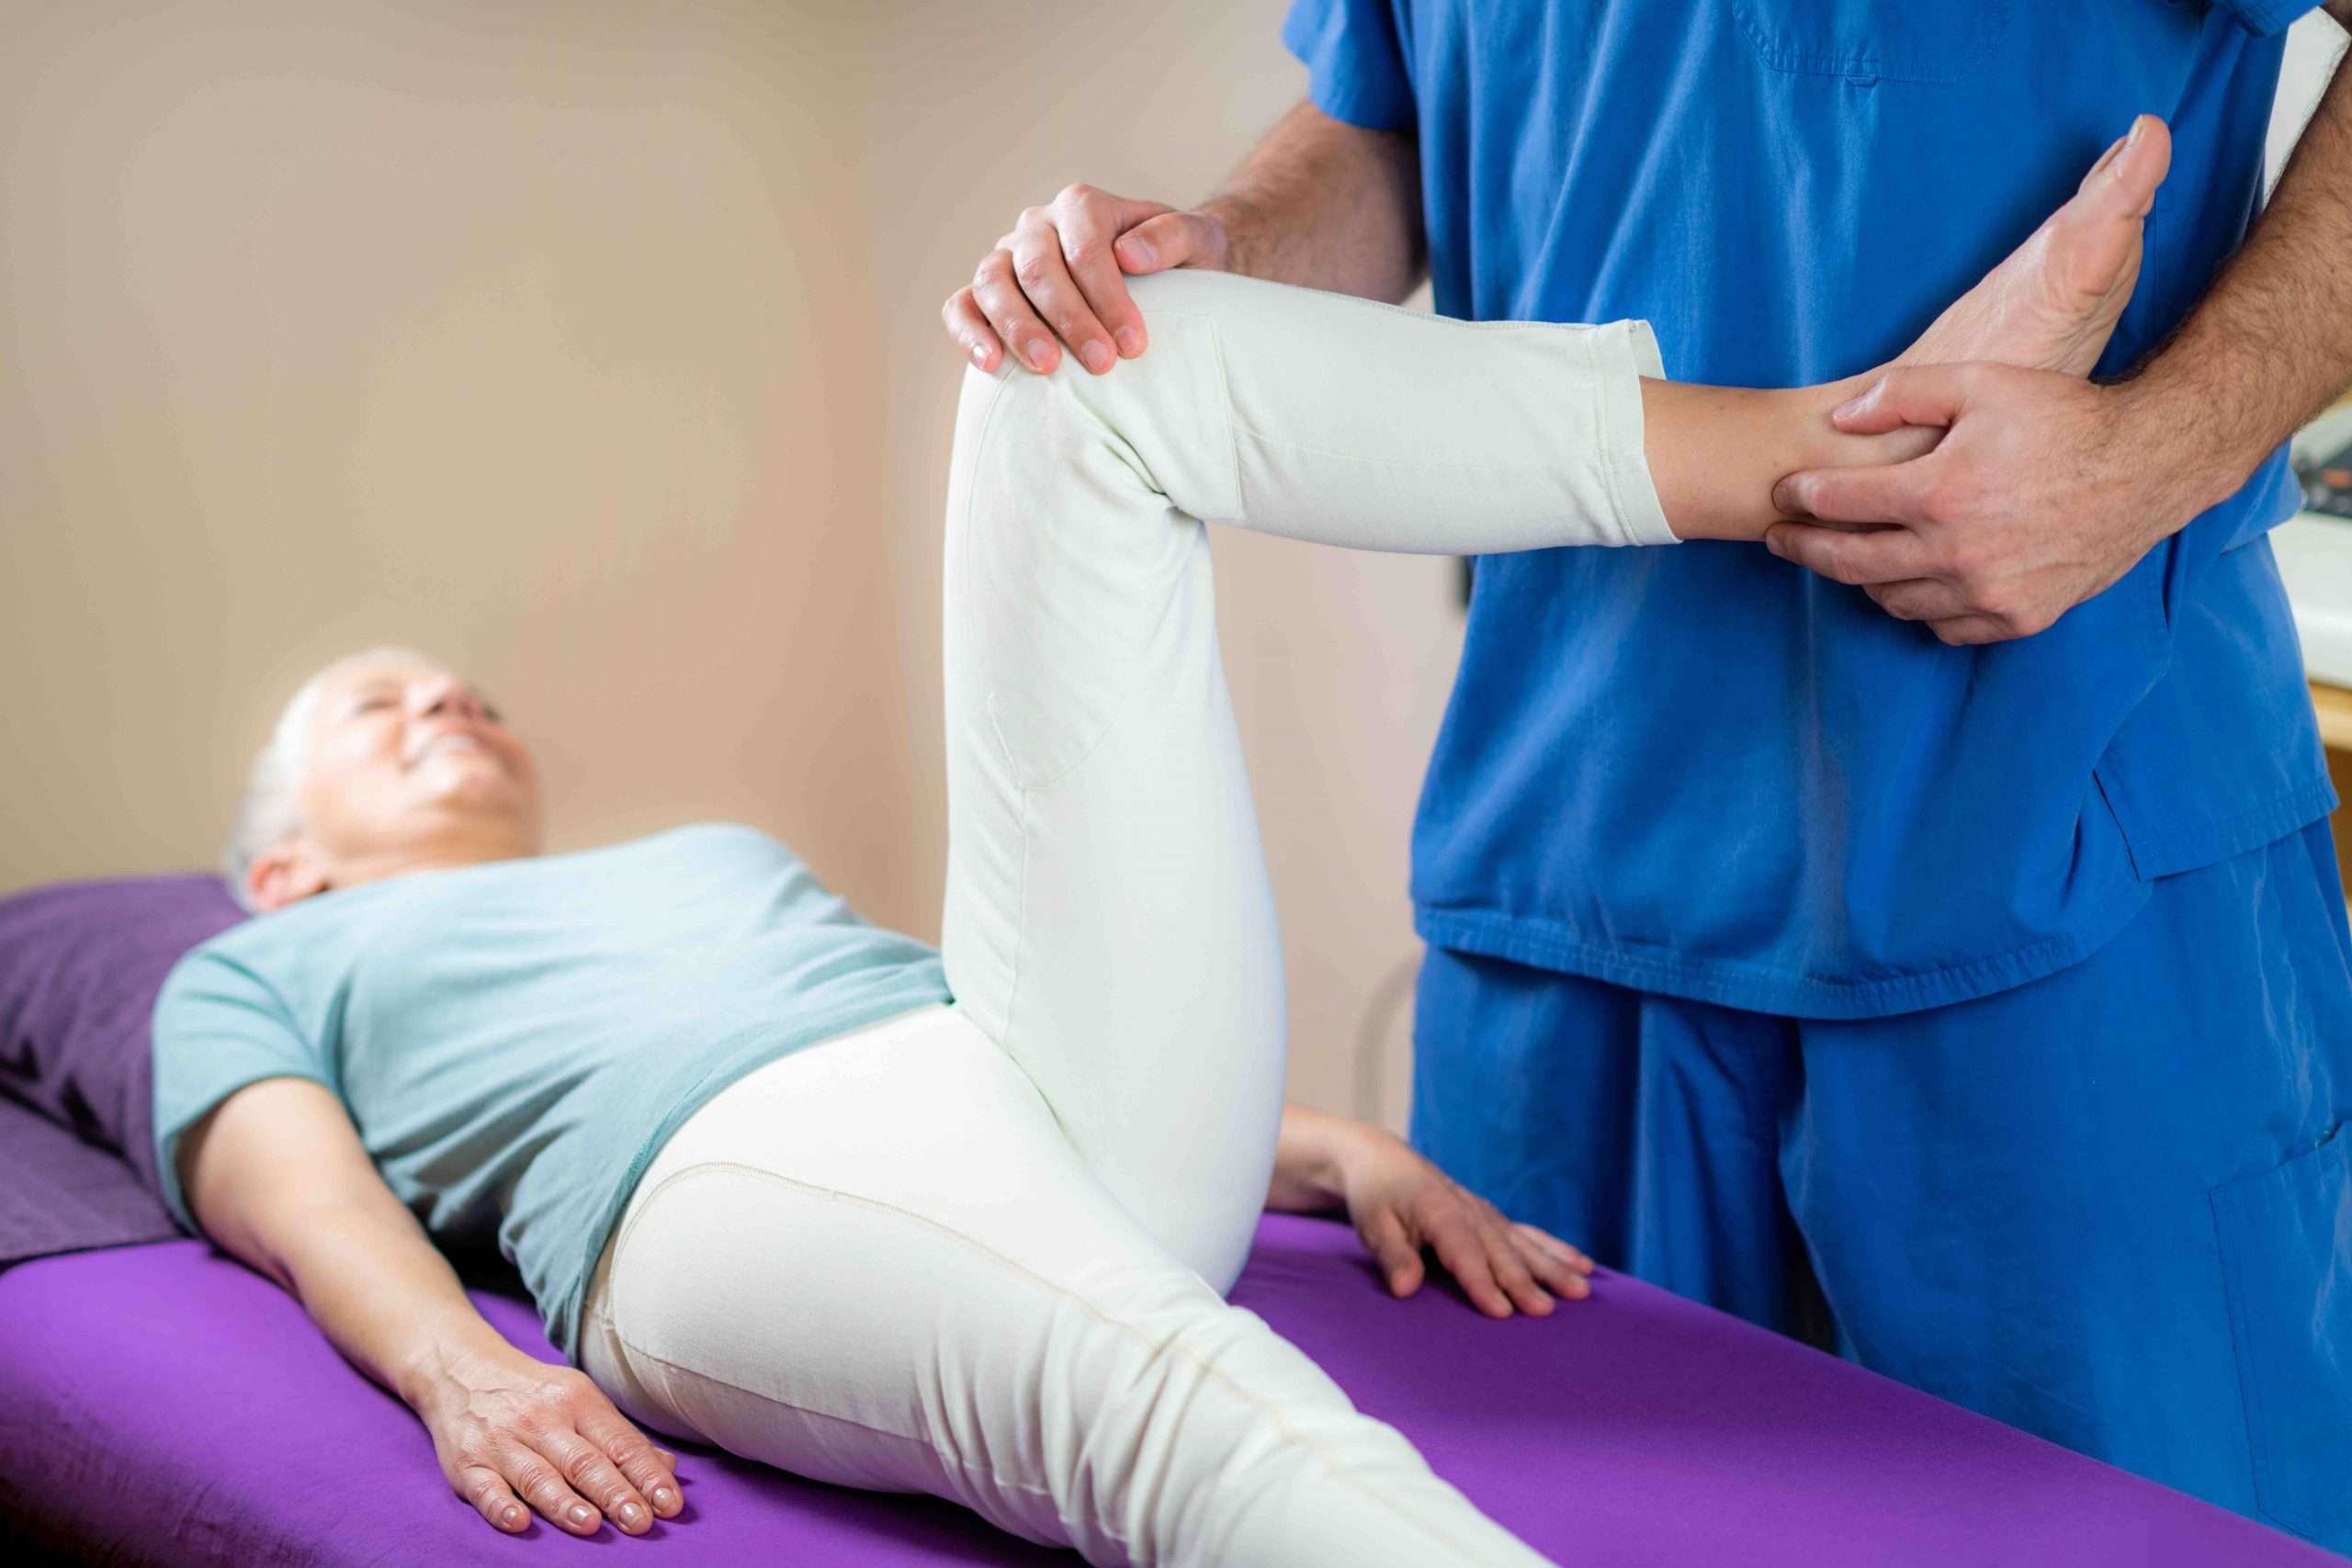 My Chiro, Dr. Aaron and Associates - Knee Pain, Common Causes & Treatment.